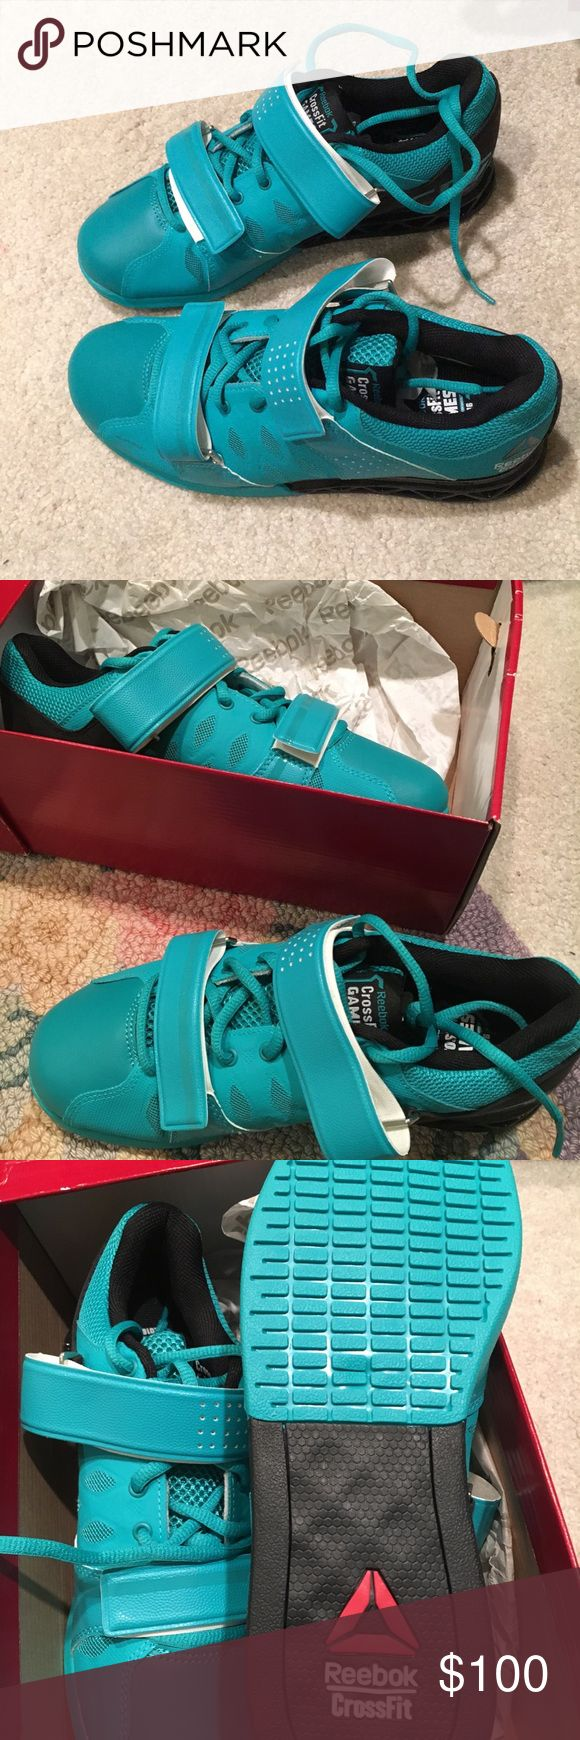 BRAND NEW Reebok CrossFit Lifter Shoes These CrossFit lifters are brand new in box. Won them from Reebok on a Twitter contest but never wore them. Super cool neon turquoise and black colors! Reebok Shoes Athletic Shoes